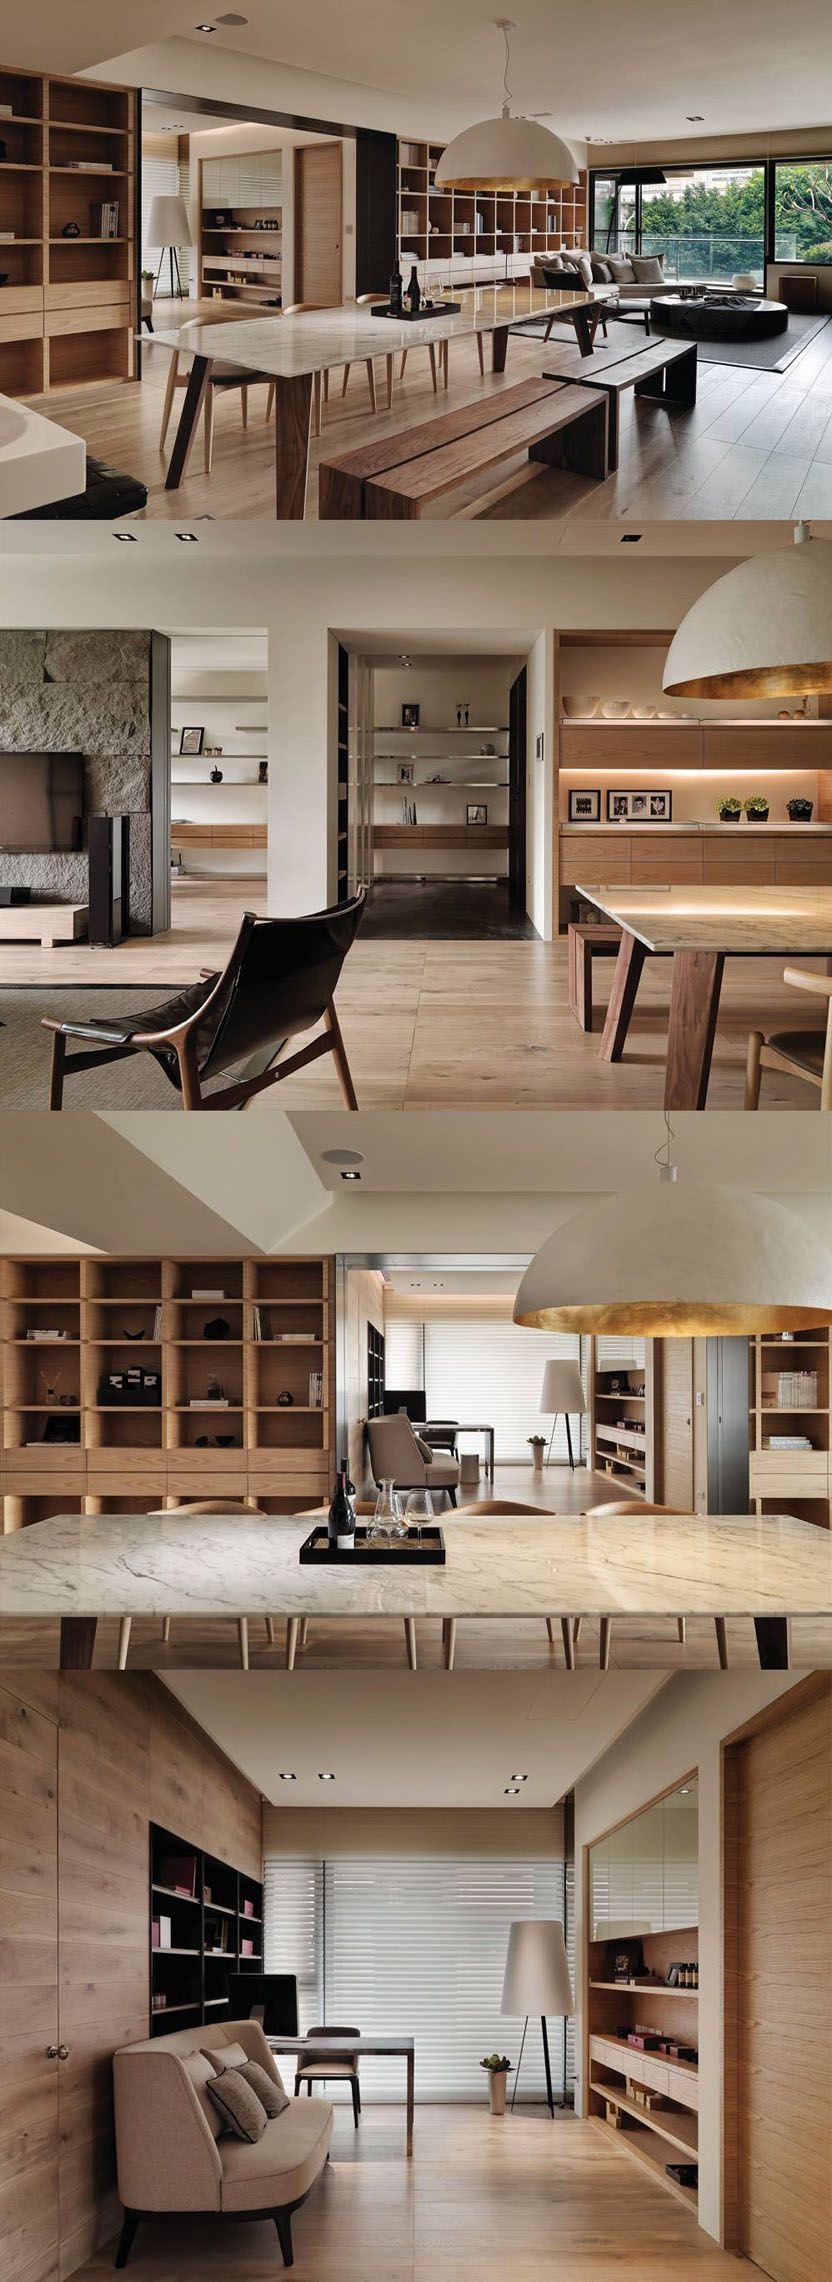 This Is The Best Natural Wood Stone Wood Interior Design Apartment Interior Home Interior Design